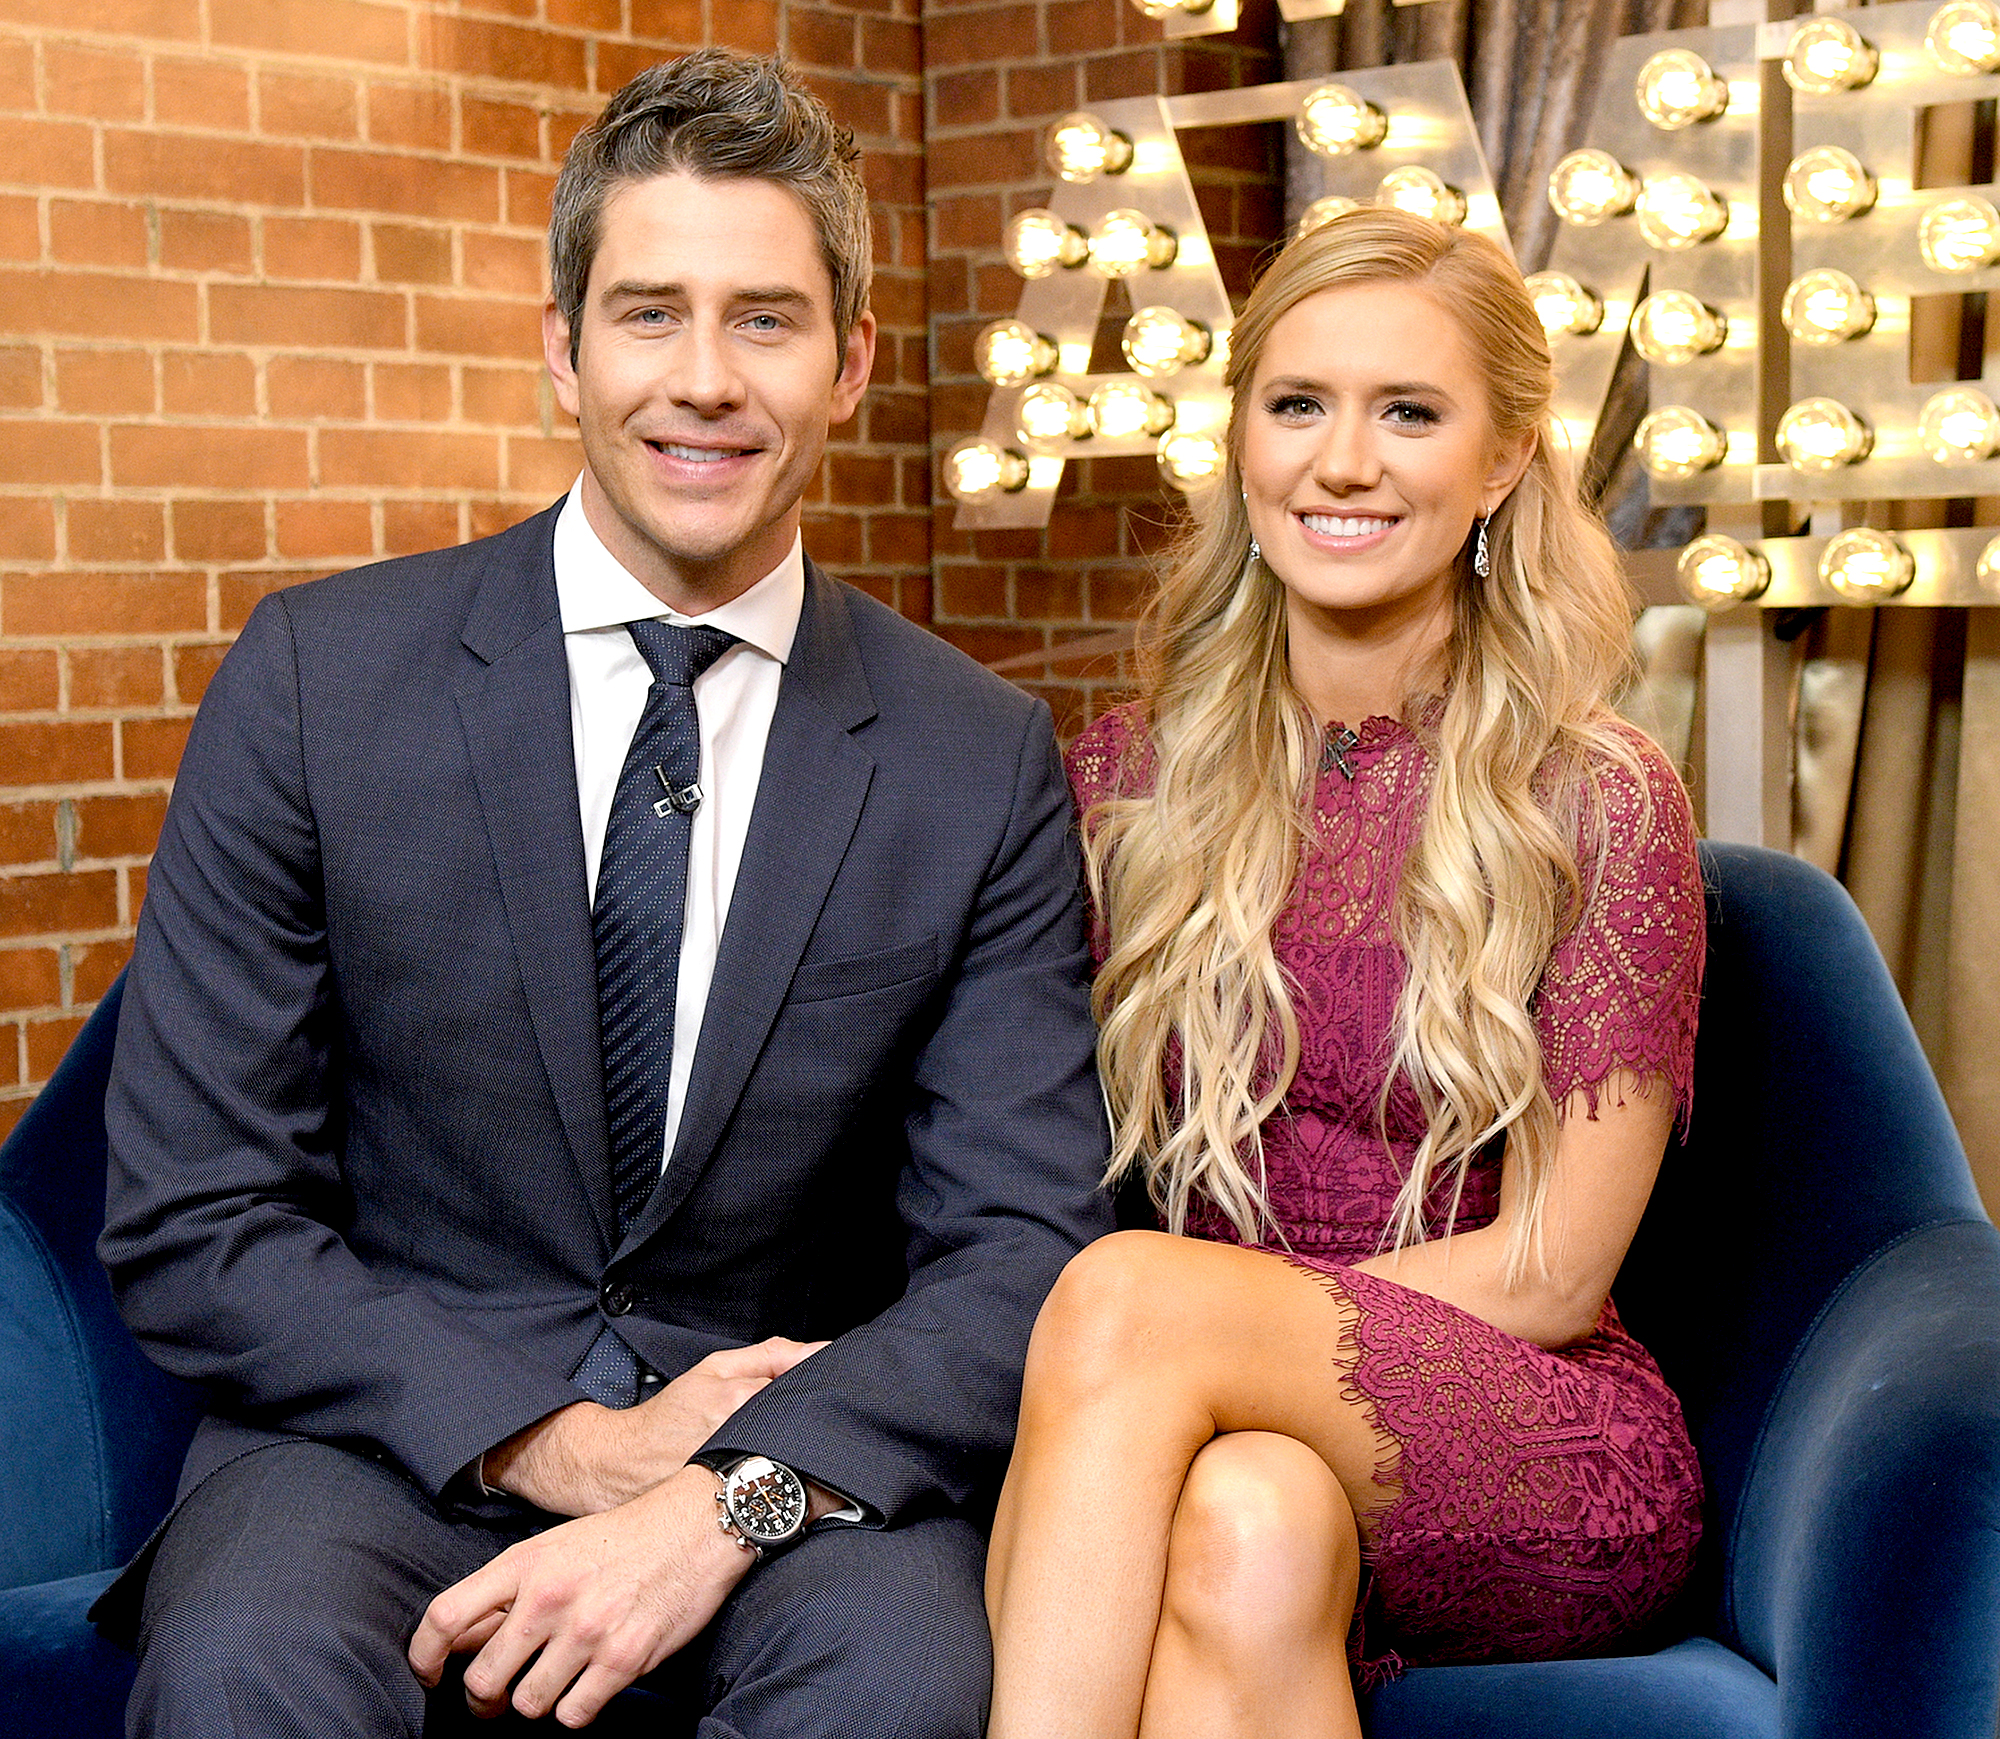 Arie-Luyendyk-Jr. -Lauren-Burnham-quotes - The Dutch native was excited to move in with his love in April 2018 after they purchased a home together in Phoenix.